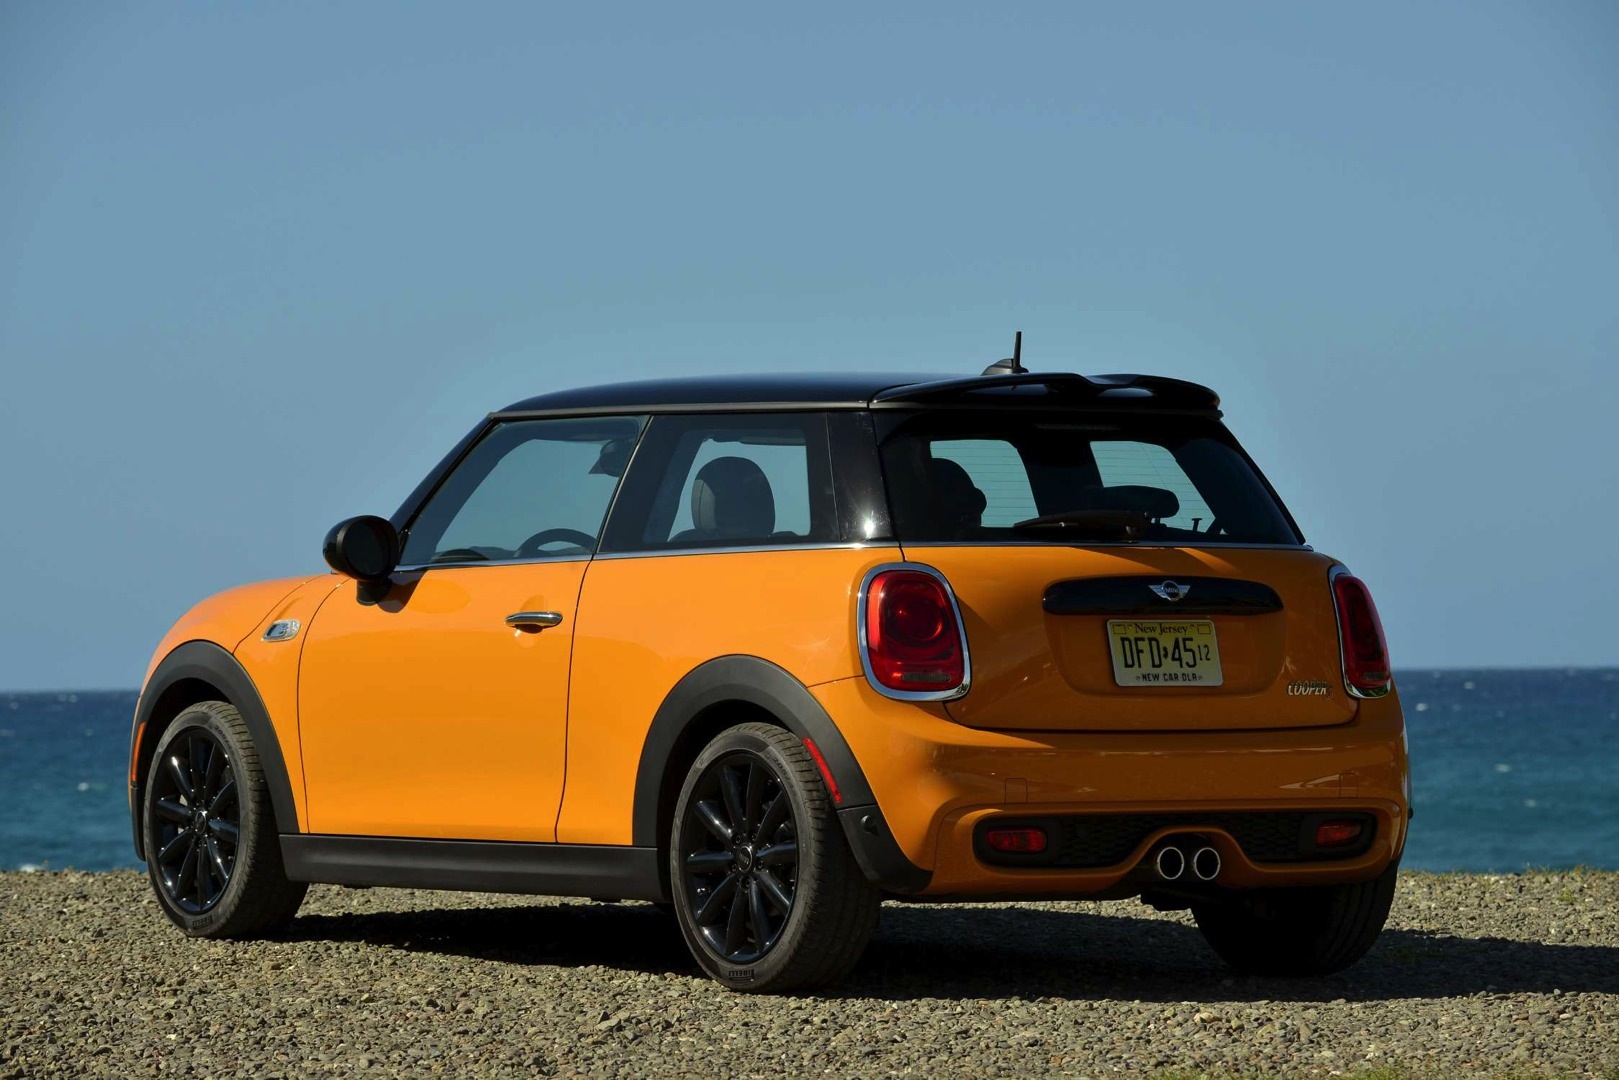 2014 mini cooper s first drive by autocar autoevolution. Black Bedroom Furniture Sets. Home Design Ideas